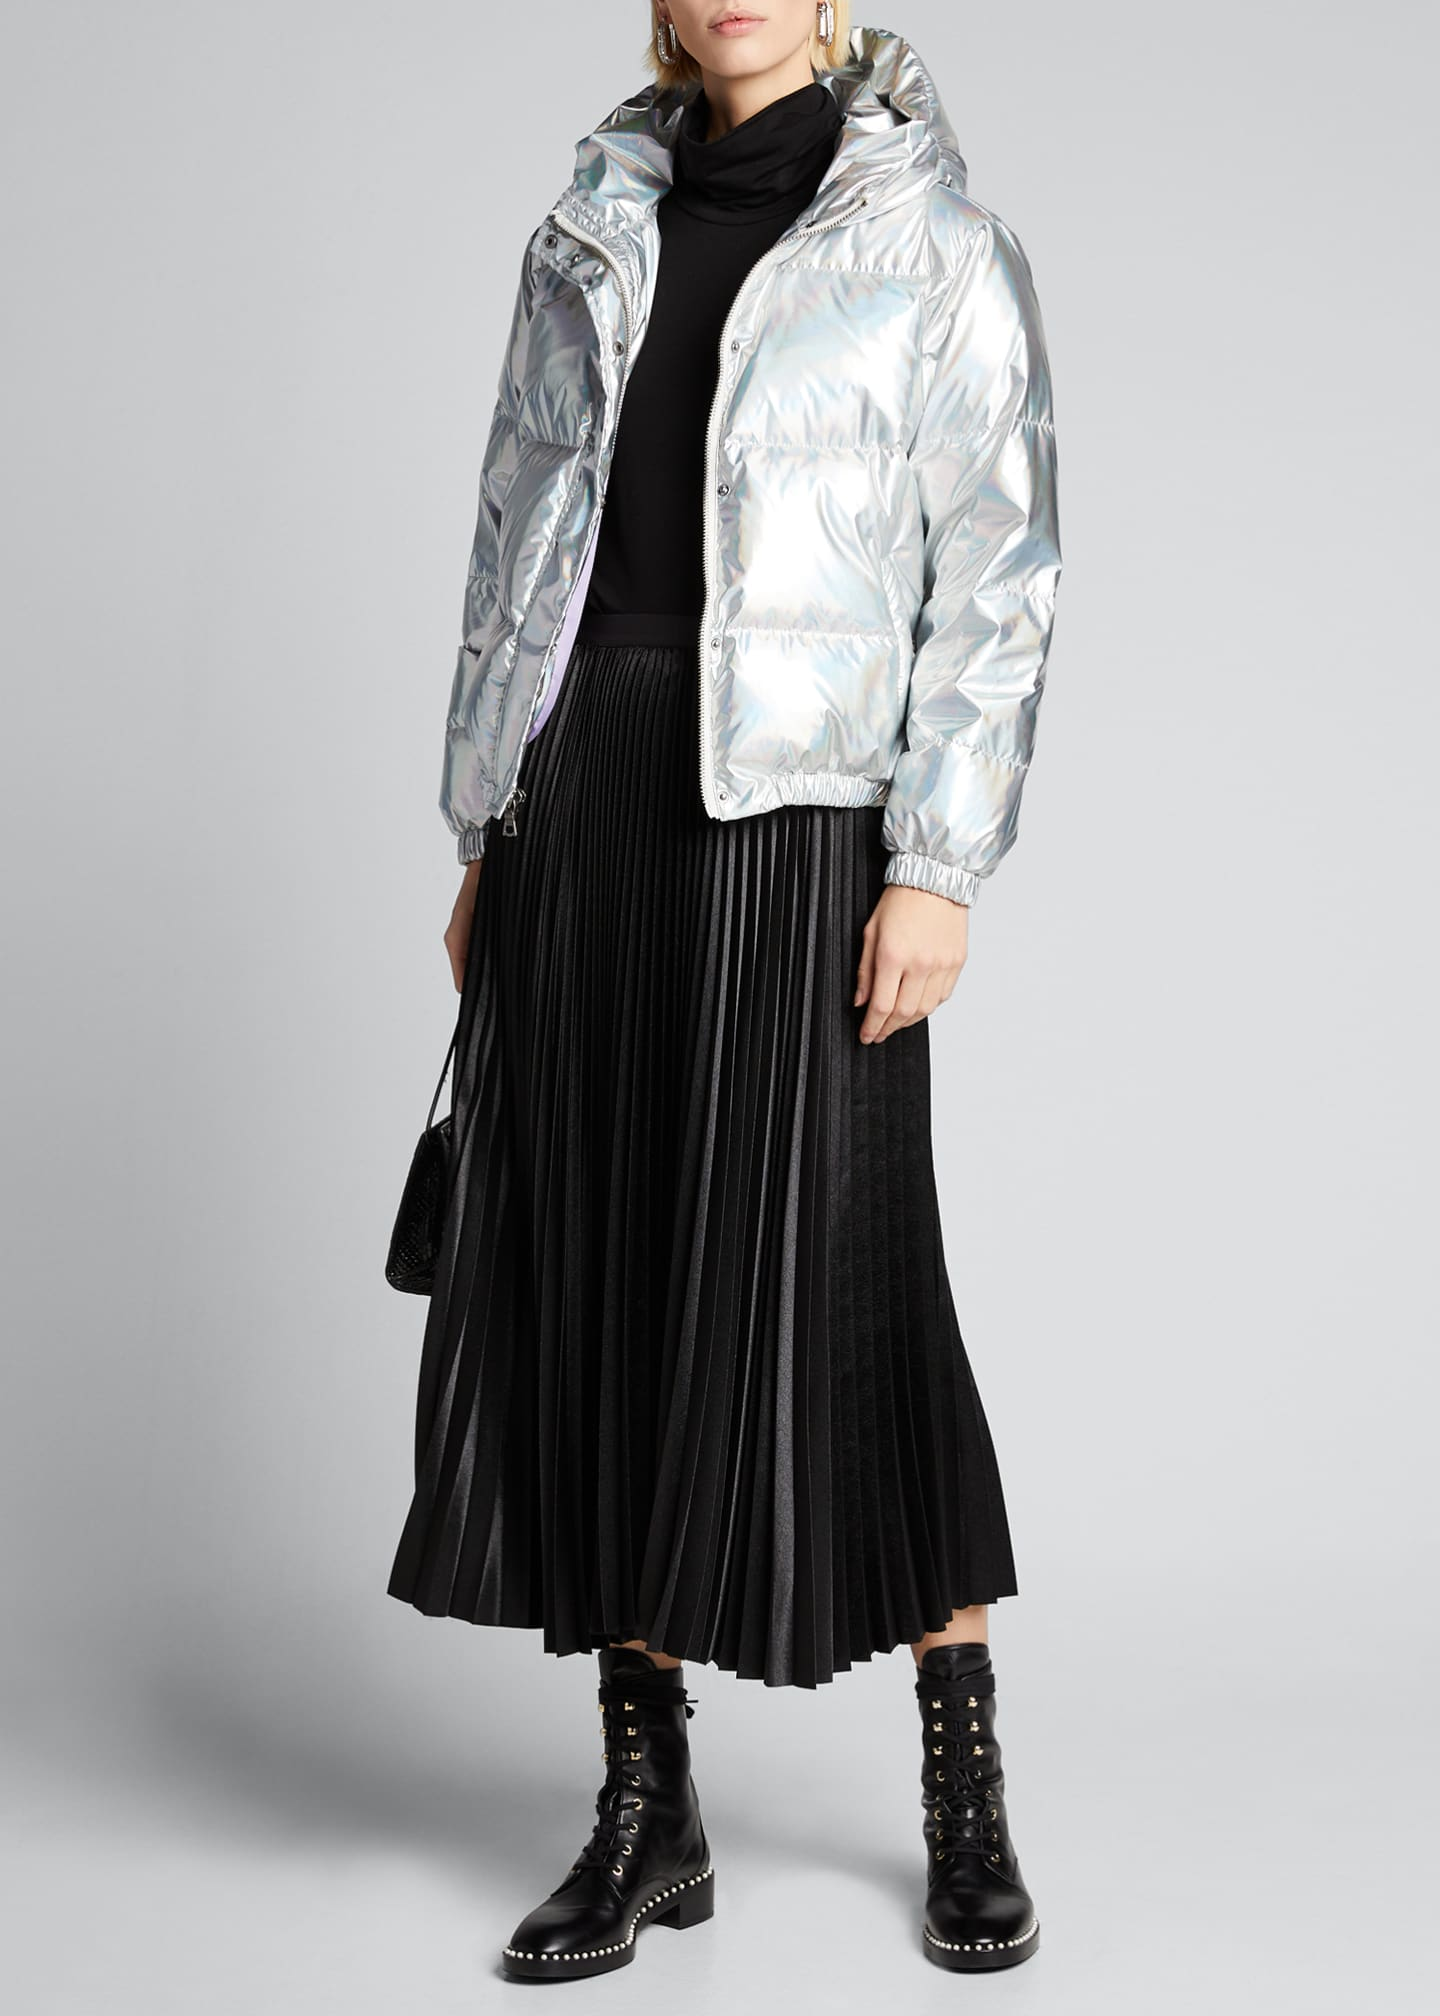 Alice + Olivia Durham Metallic Hooded Puffer Jacket